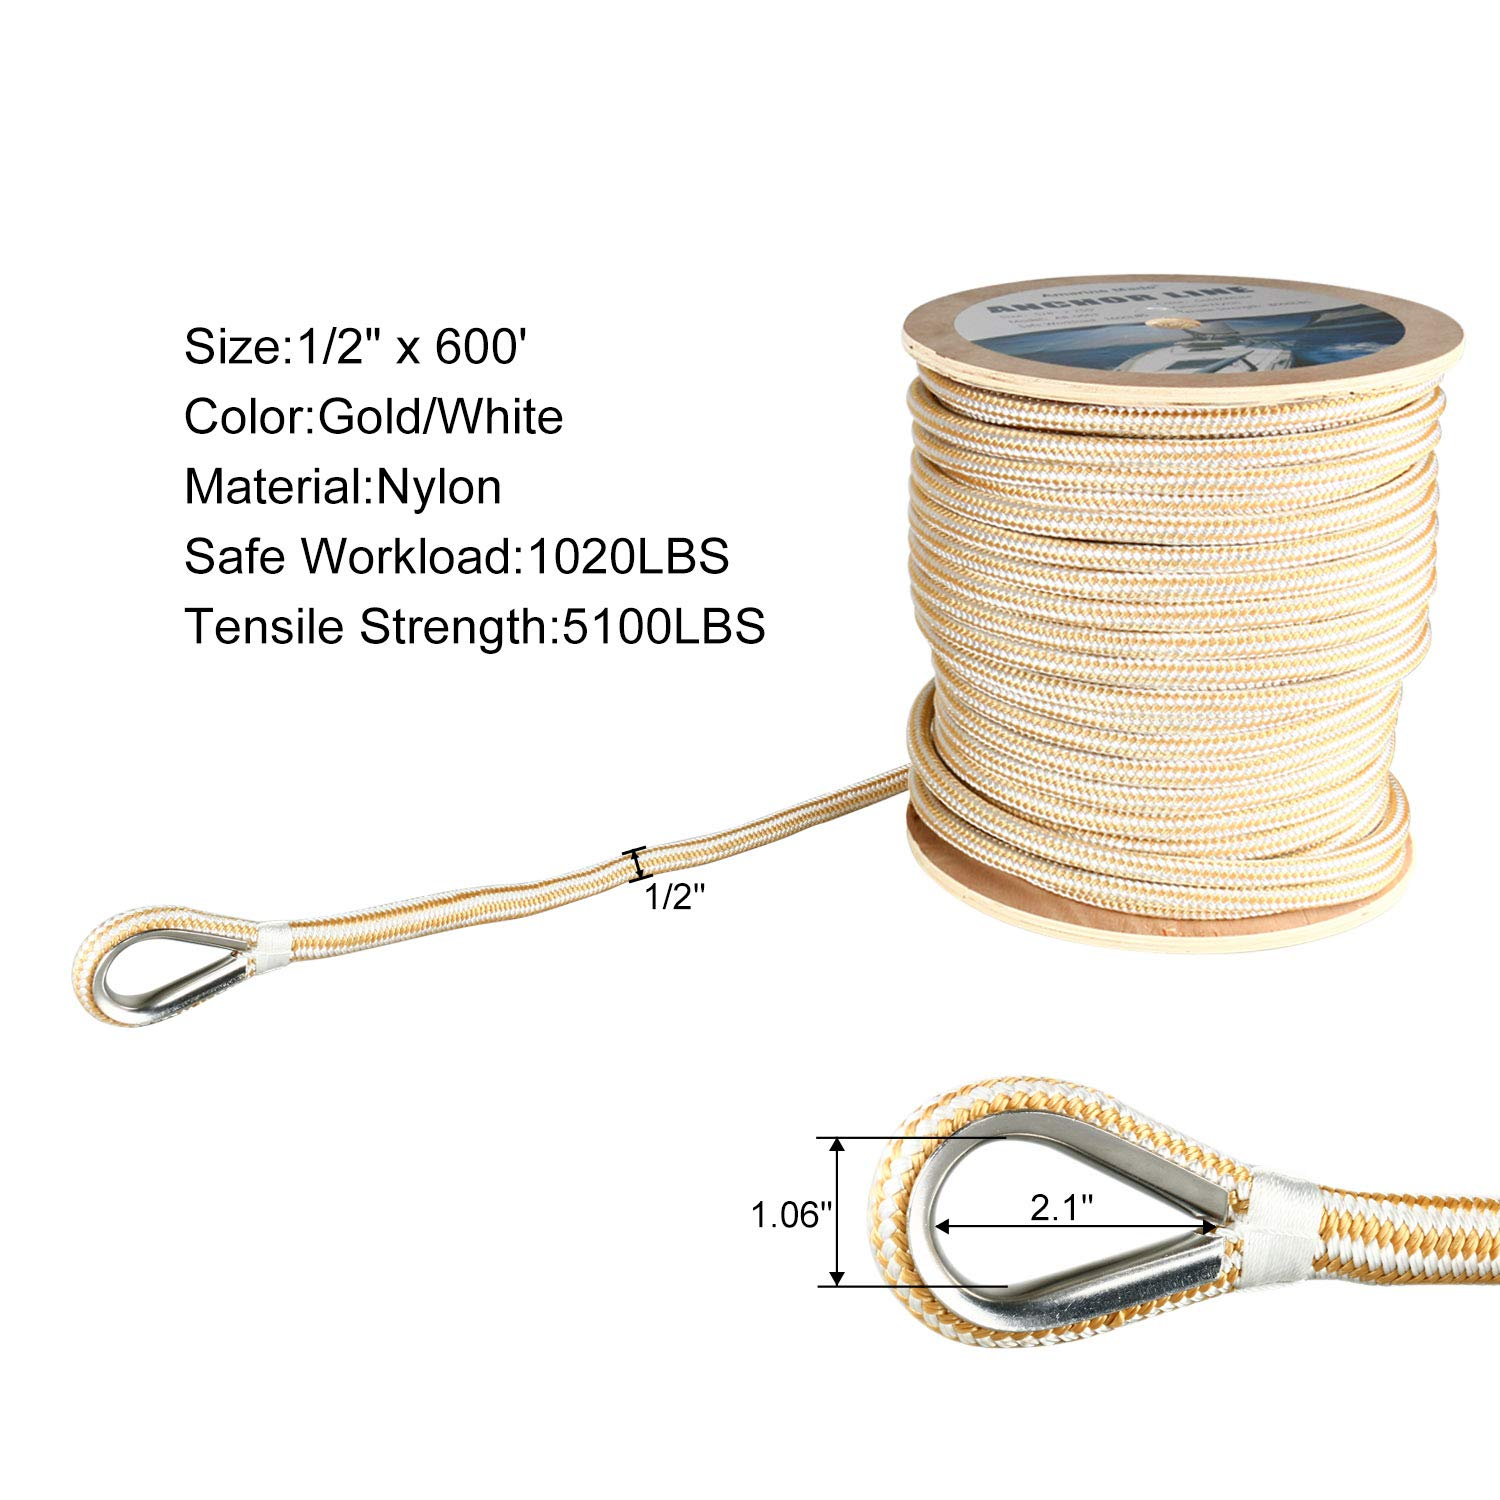 Amarine Made Heavy Duty Double Braid Nylon Anchor Line with Stainless Steel Thimble-White/Gold (1/2'' x 600')